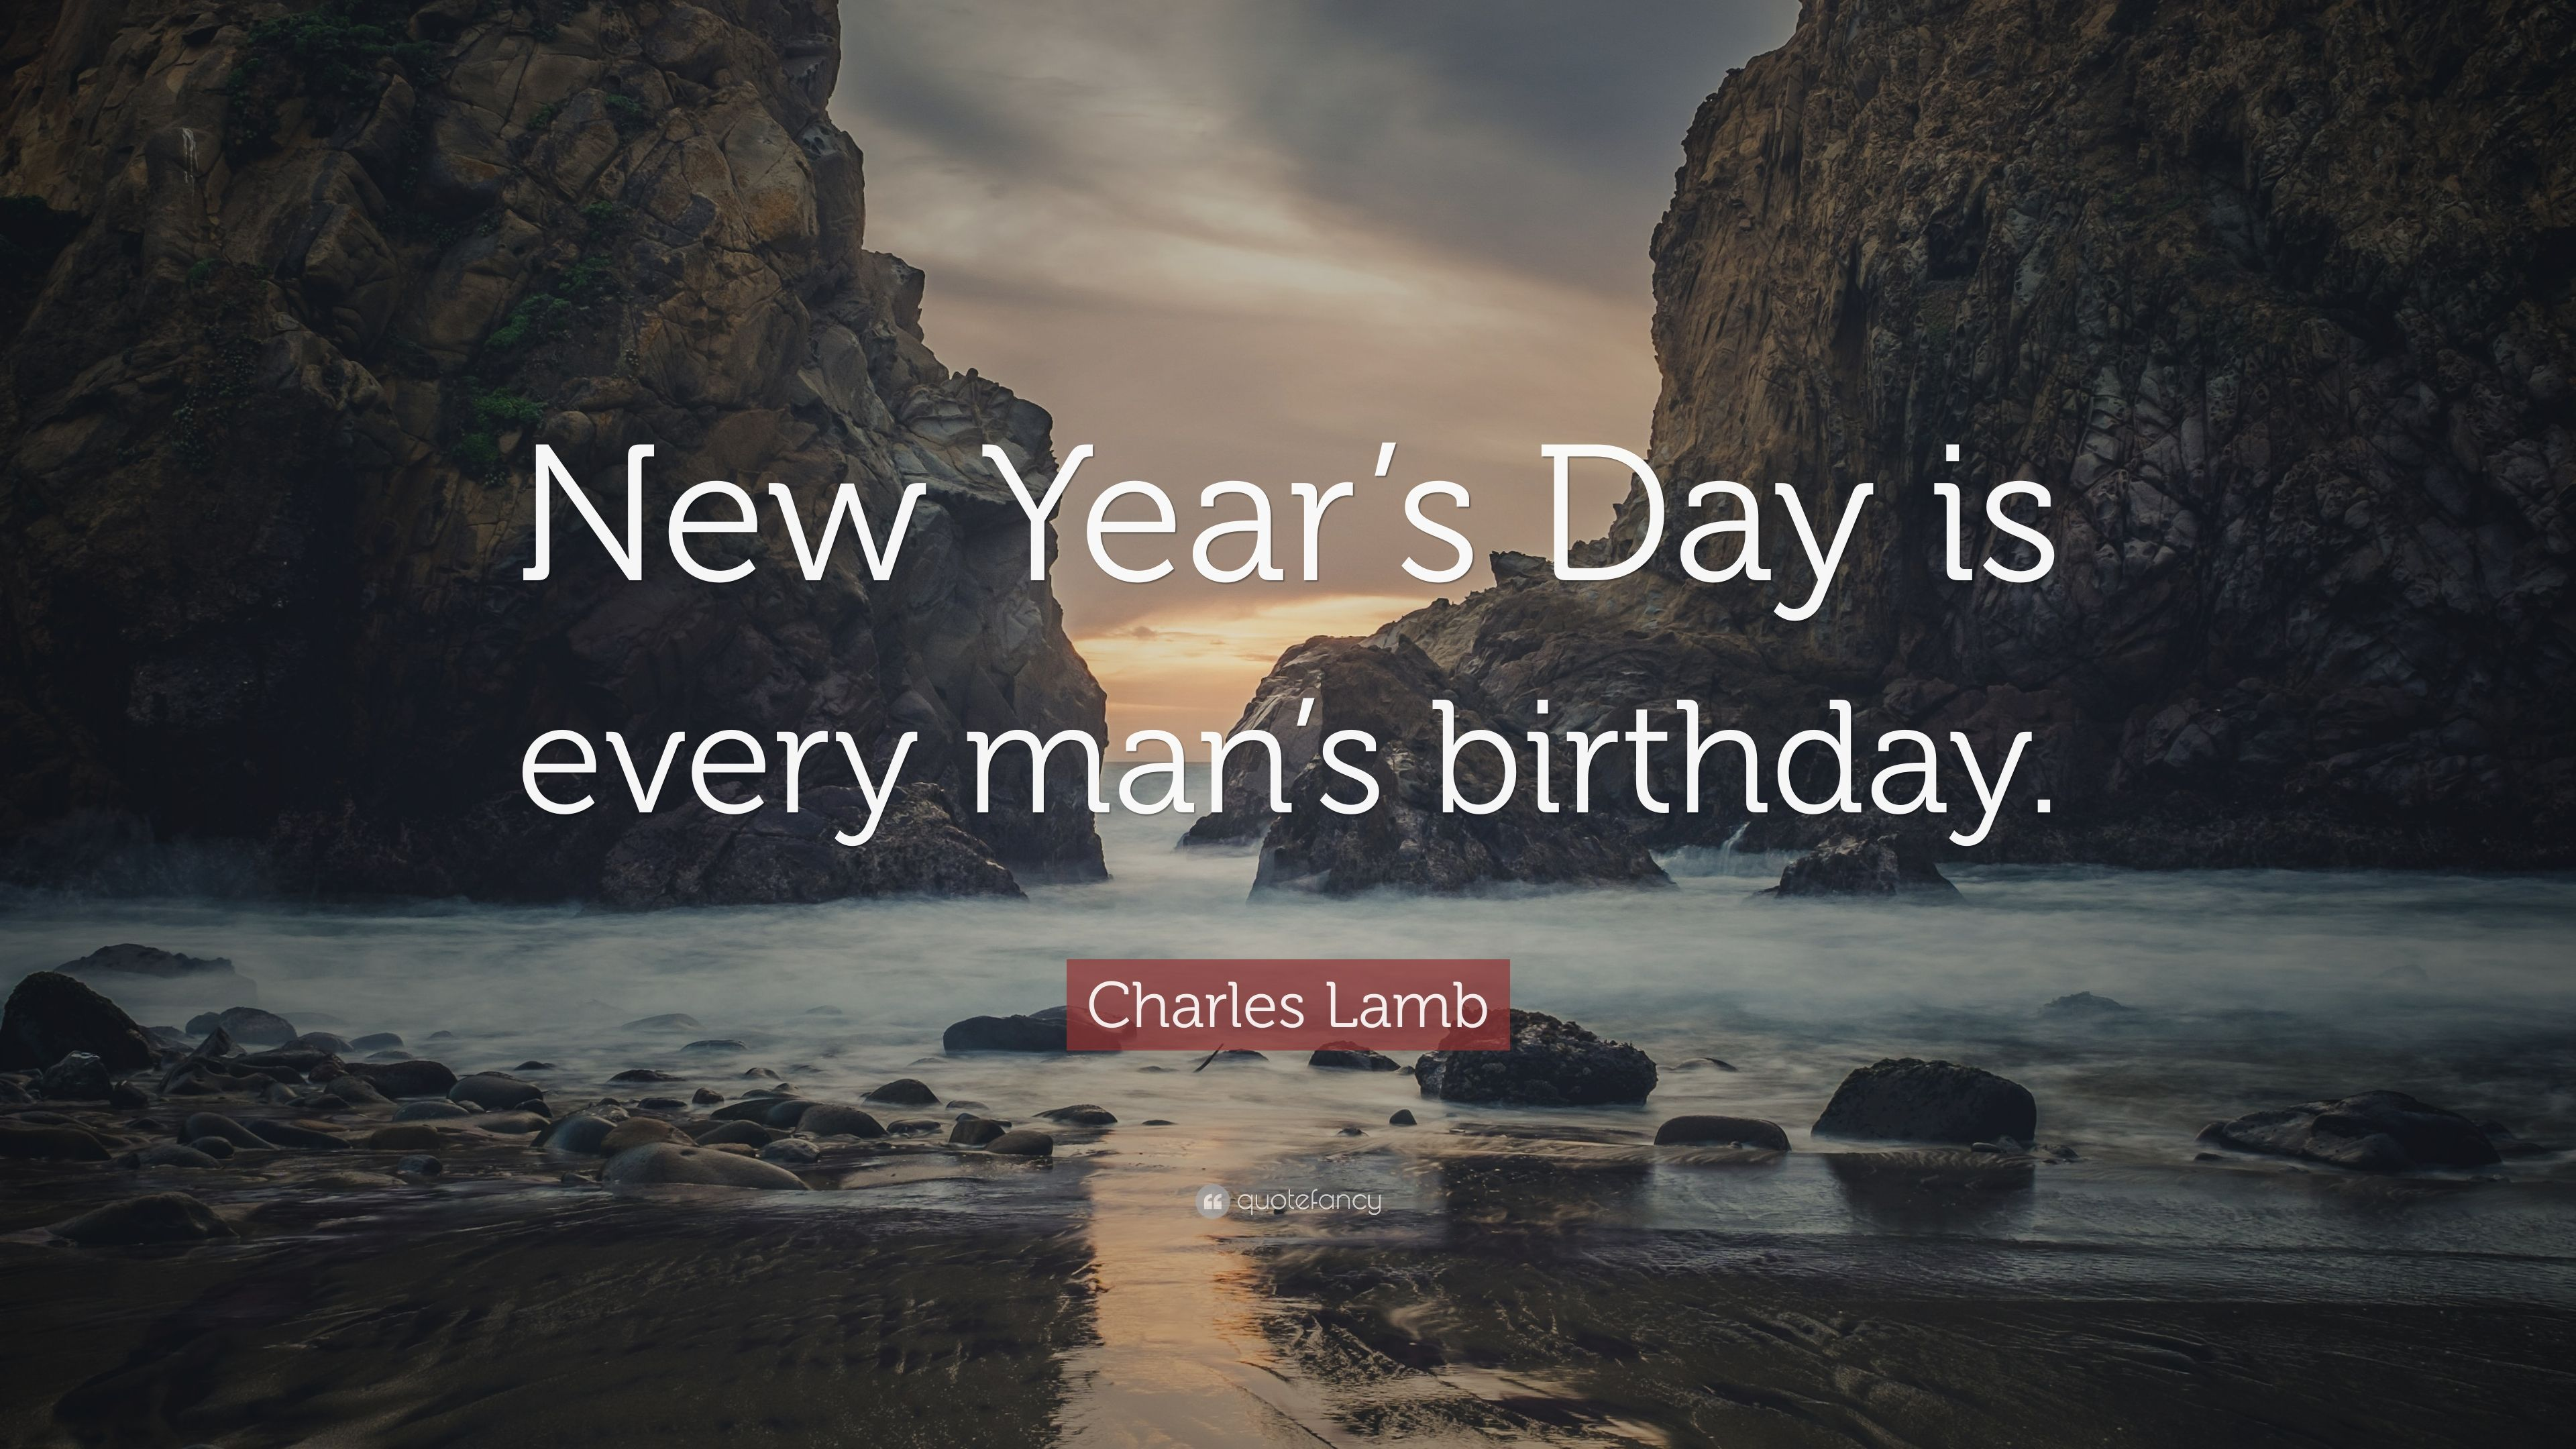 charles lamb quote new years day is every mans birthday